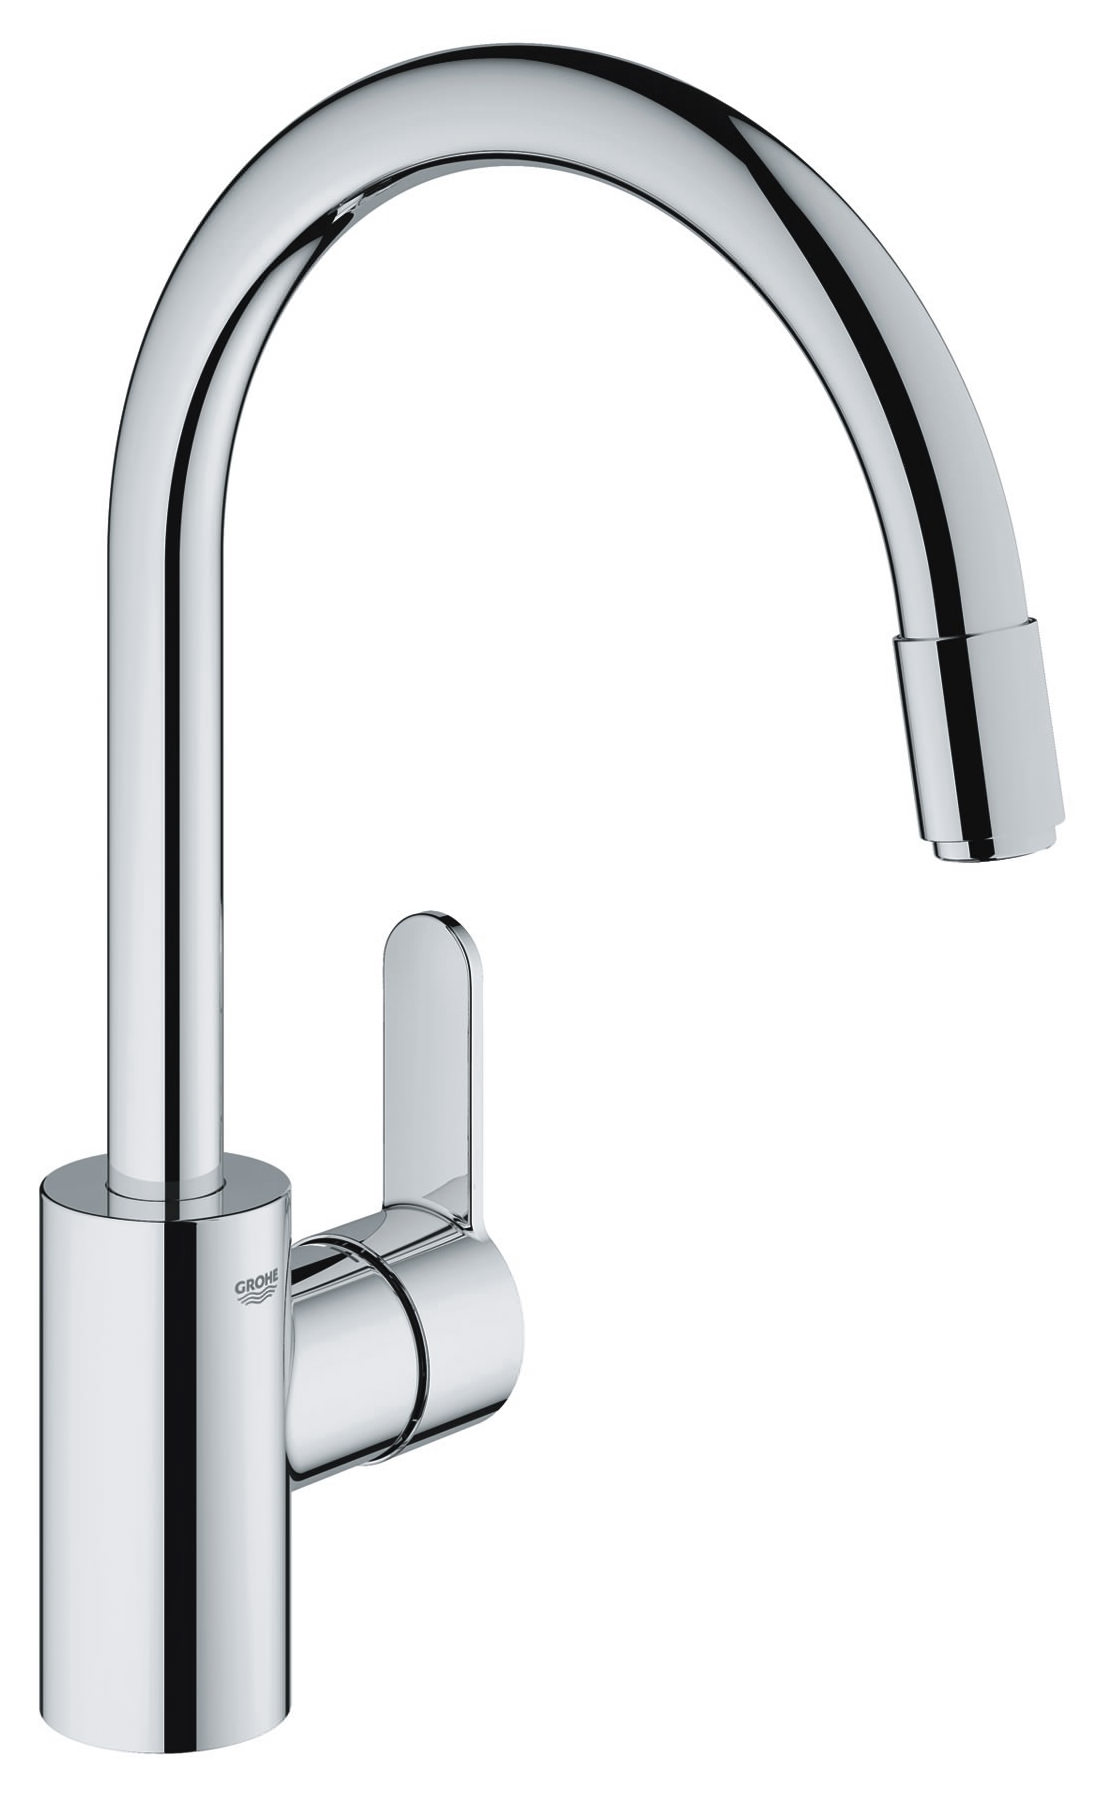 grohe eurostyle cosmo sink mixer tap with pull out mousseur spout 31126002. Black Bedroom Furniture Sets. Home Design Ideas